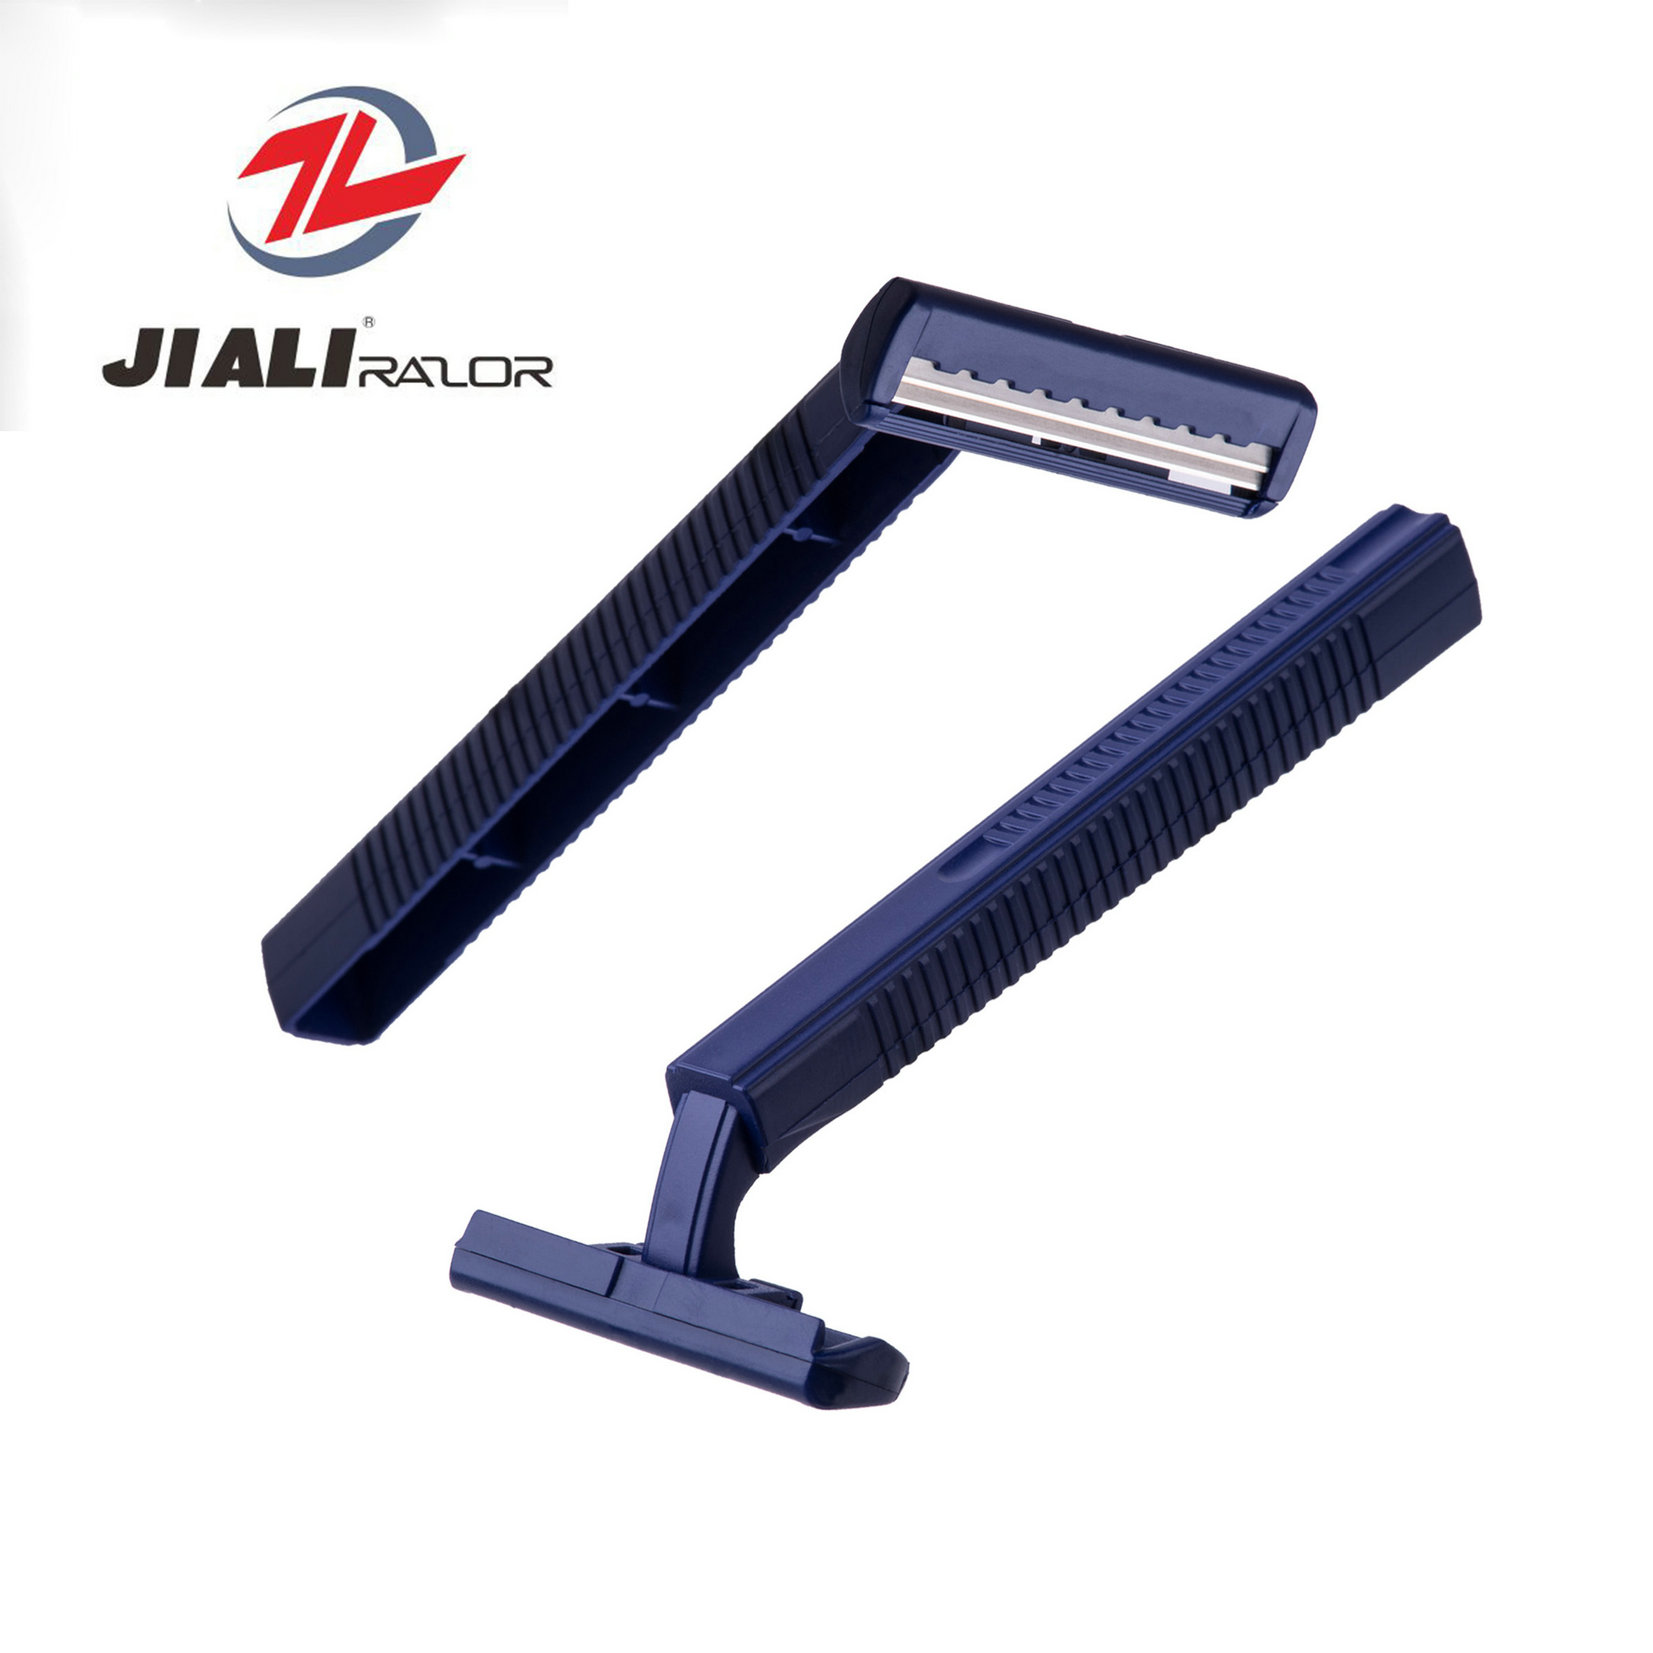 Twin Blade Stainless Steel Disposable Shaving Razor